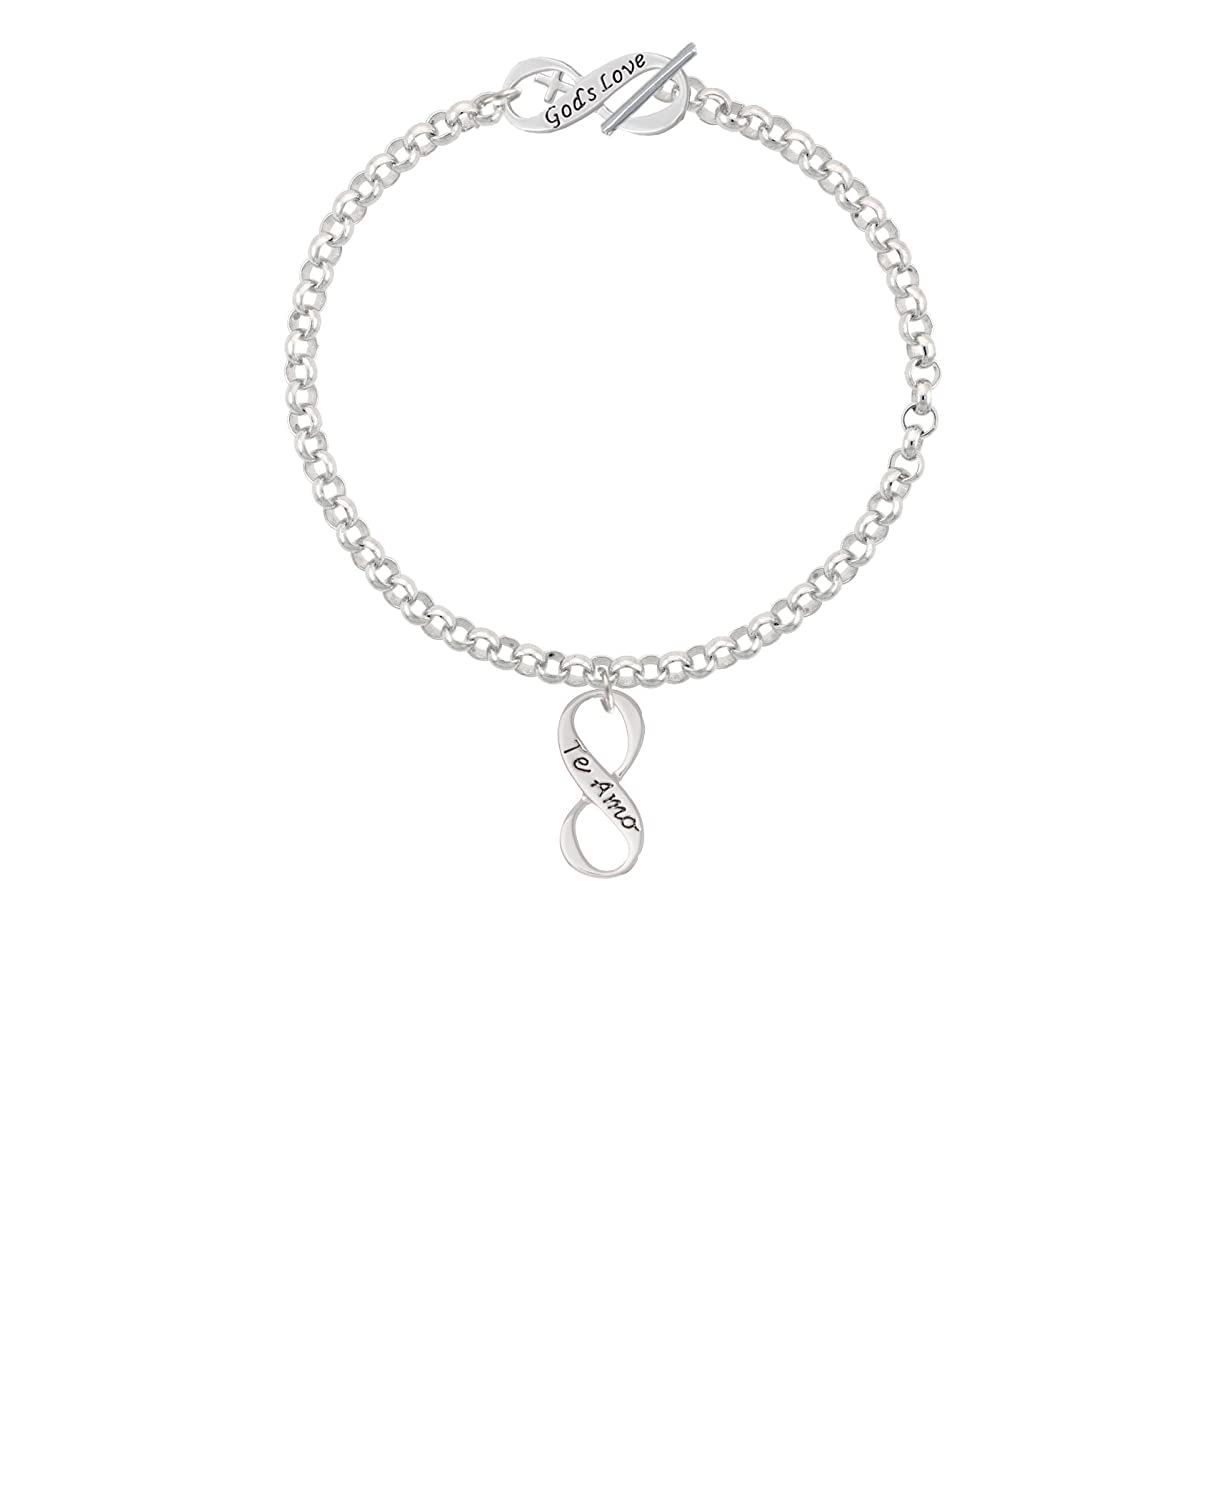 8 Silvertone Te Amo Infinity Sign Gods Love Infinity Toggle Chain Bracelet